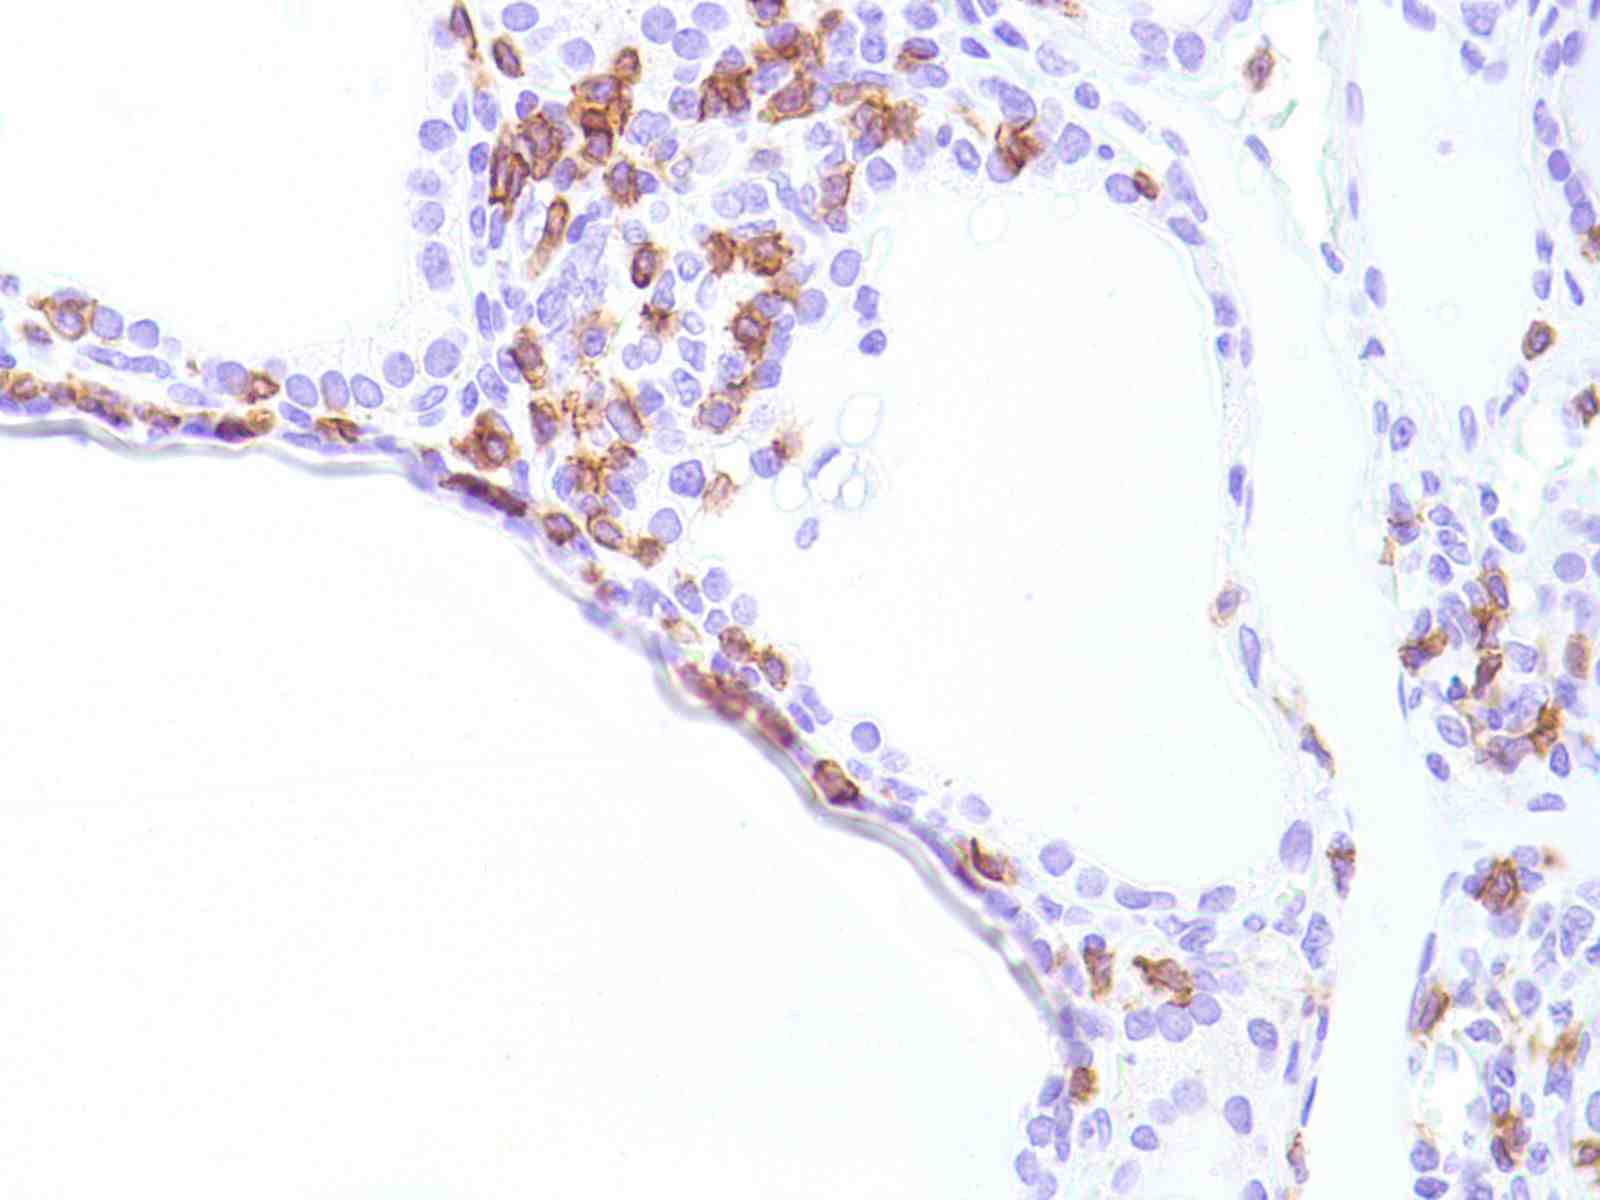 Human Thyroid stained with anti-CD8 antibody